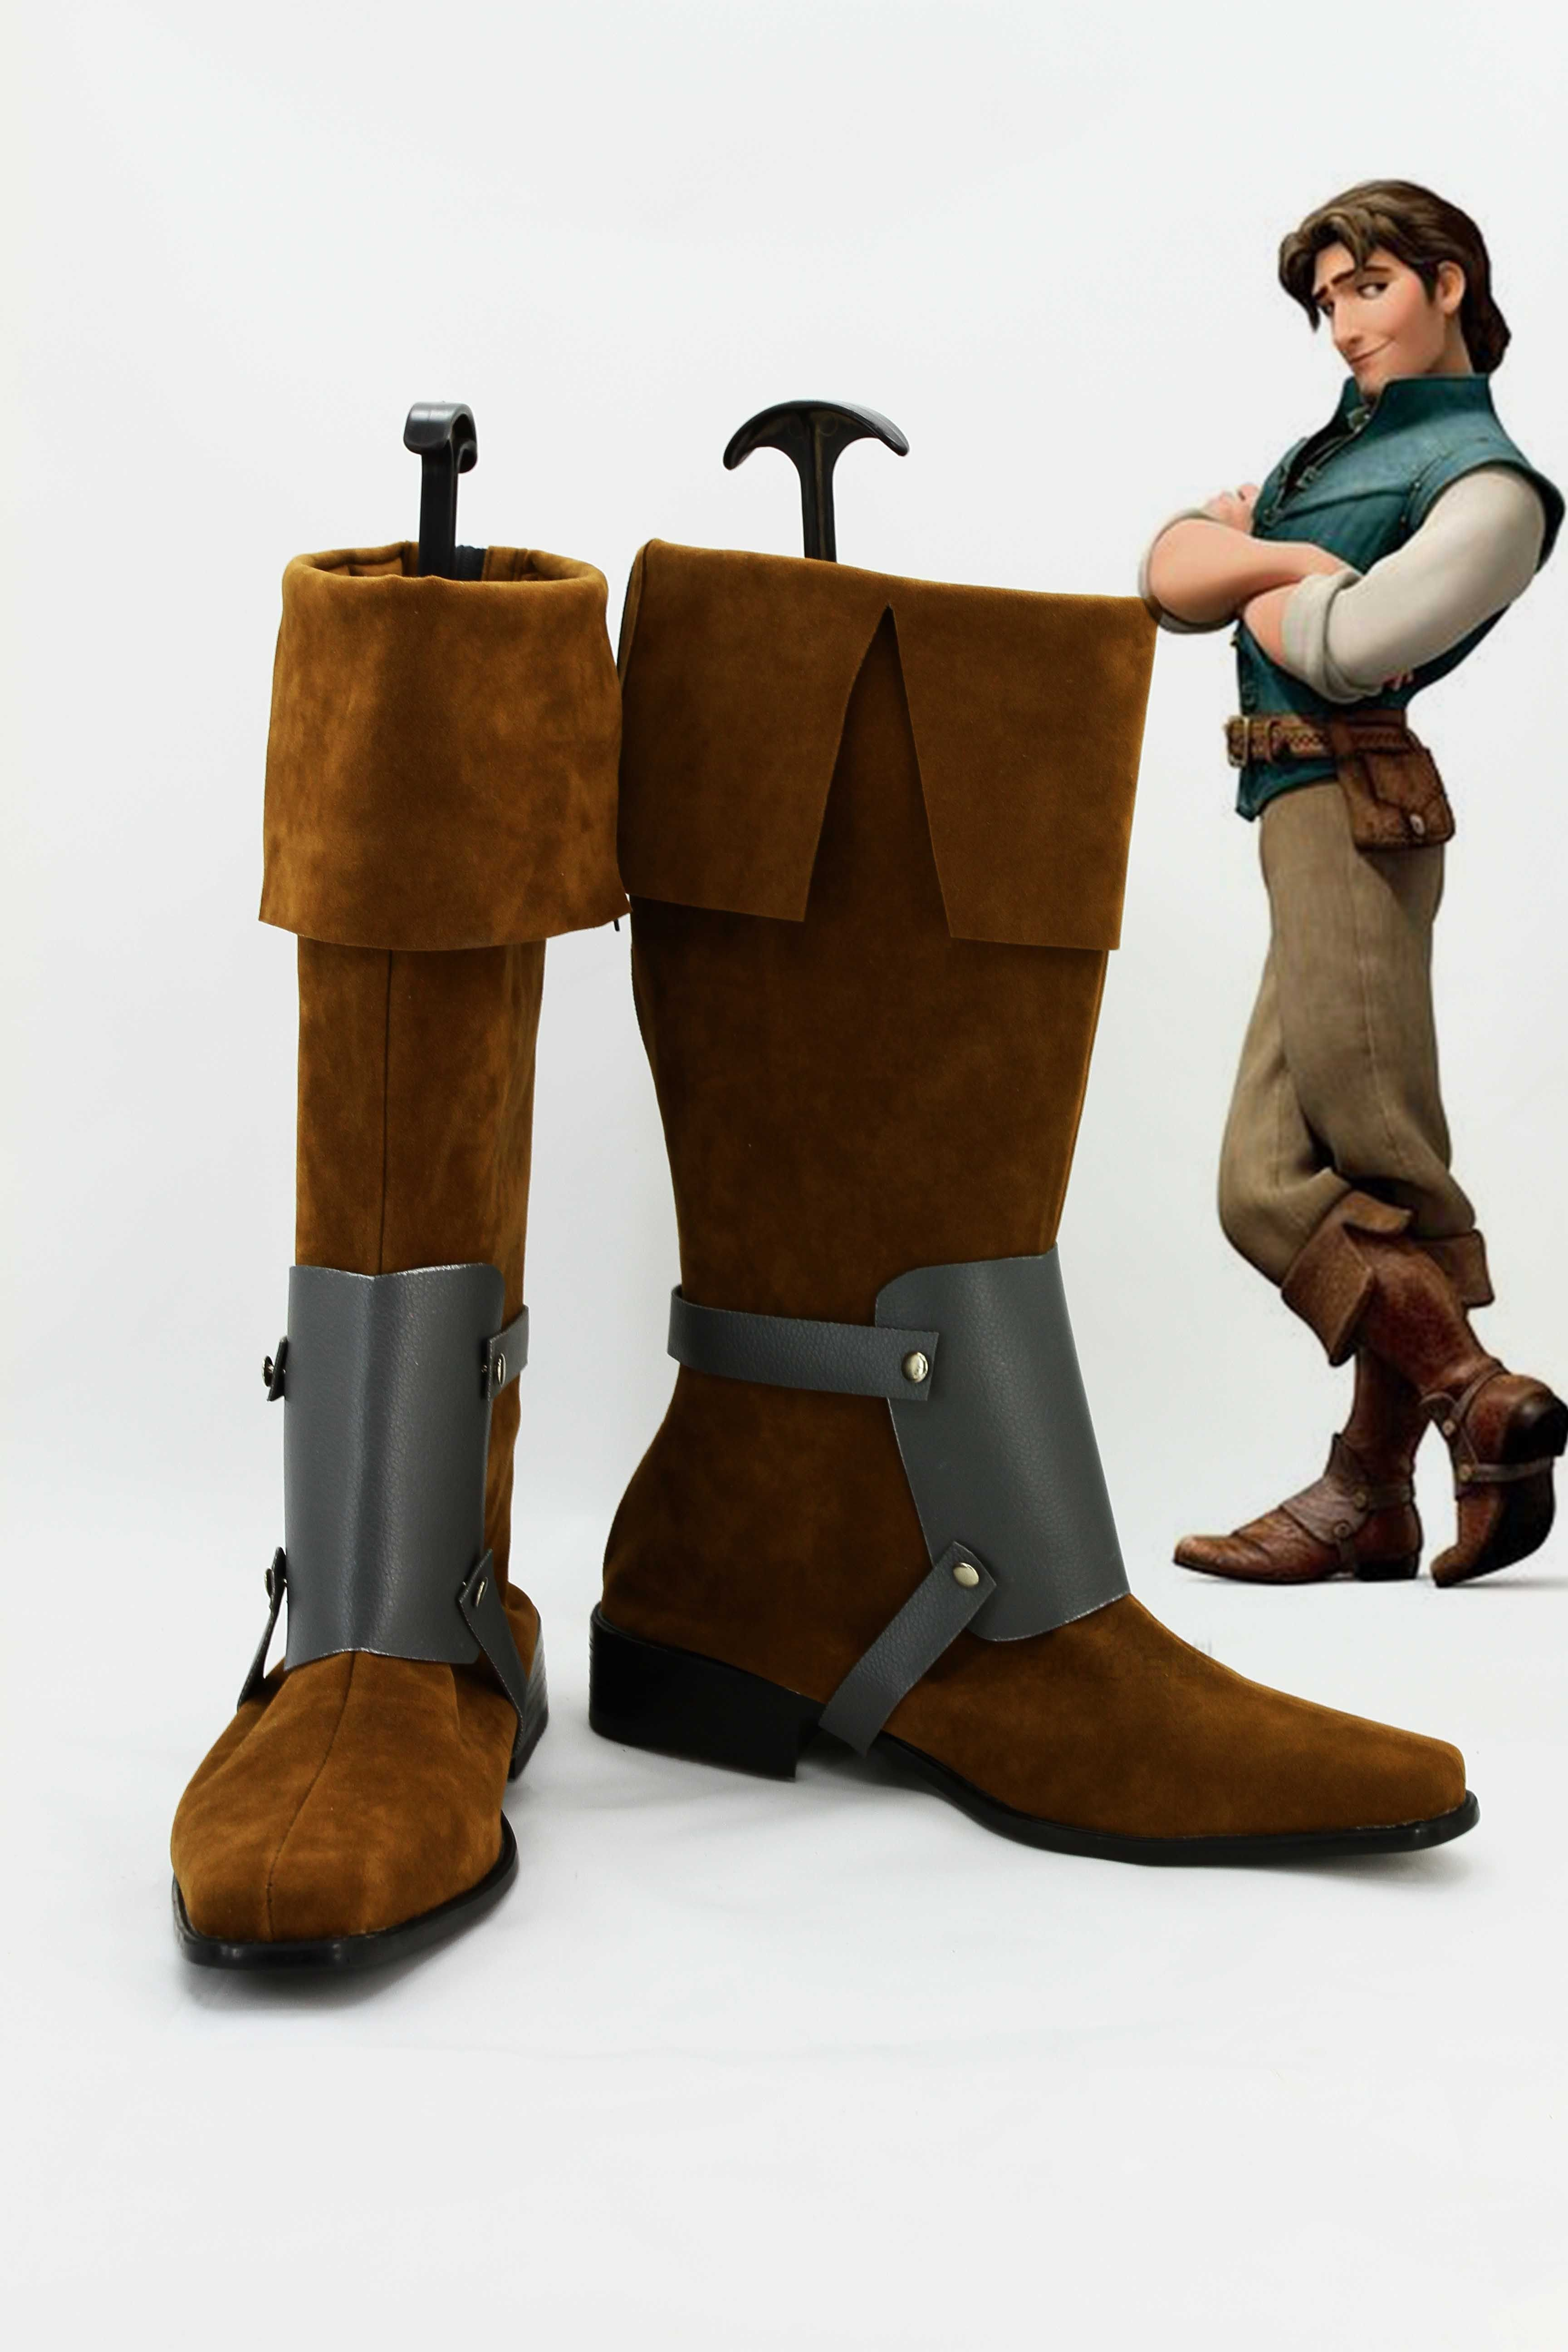 2697b6f97cec0 Disney Tangled Prince Flynn Rider Cosplay Boots Costume from Tangled ...